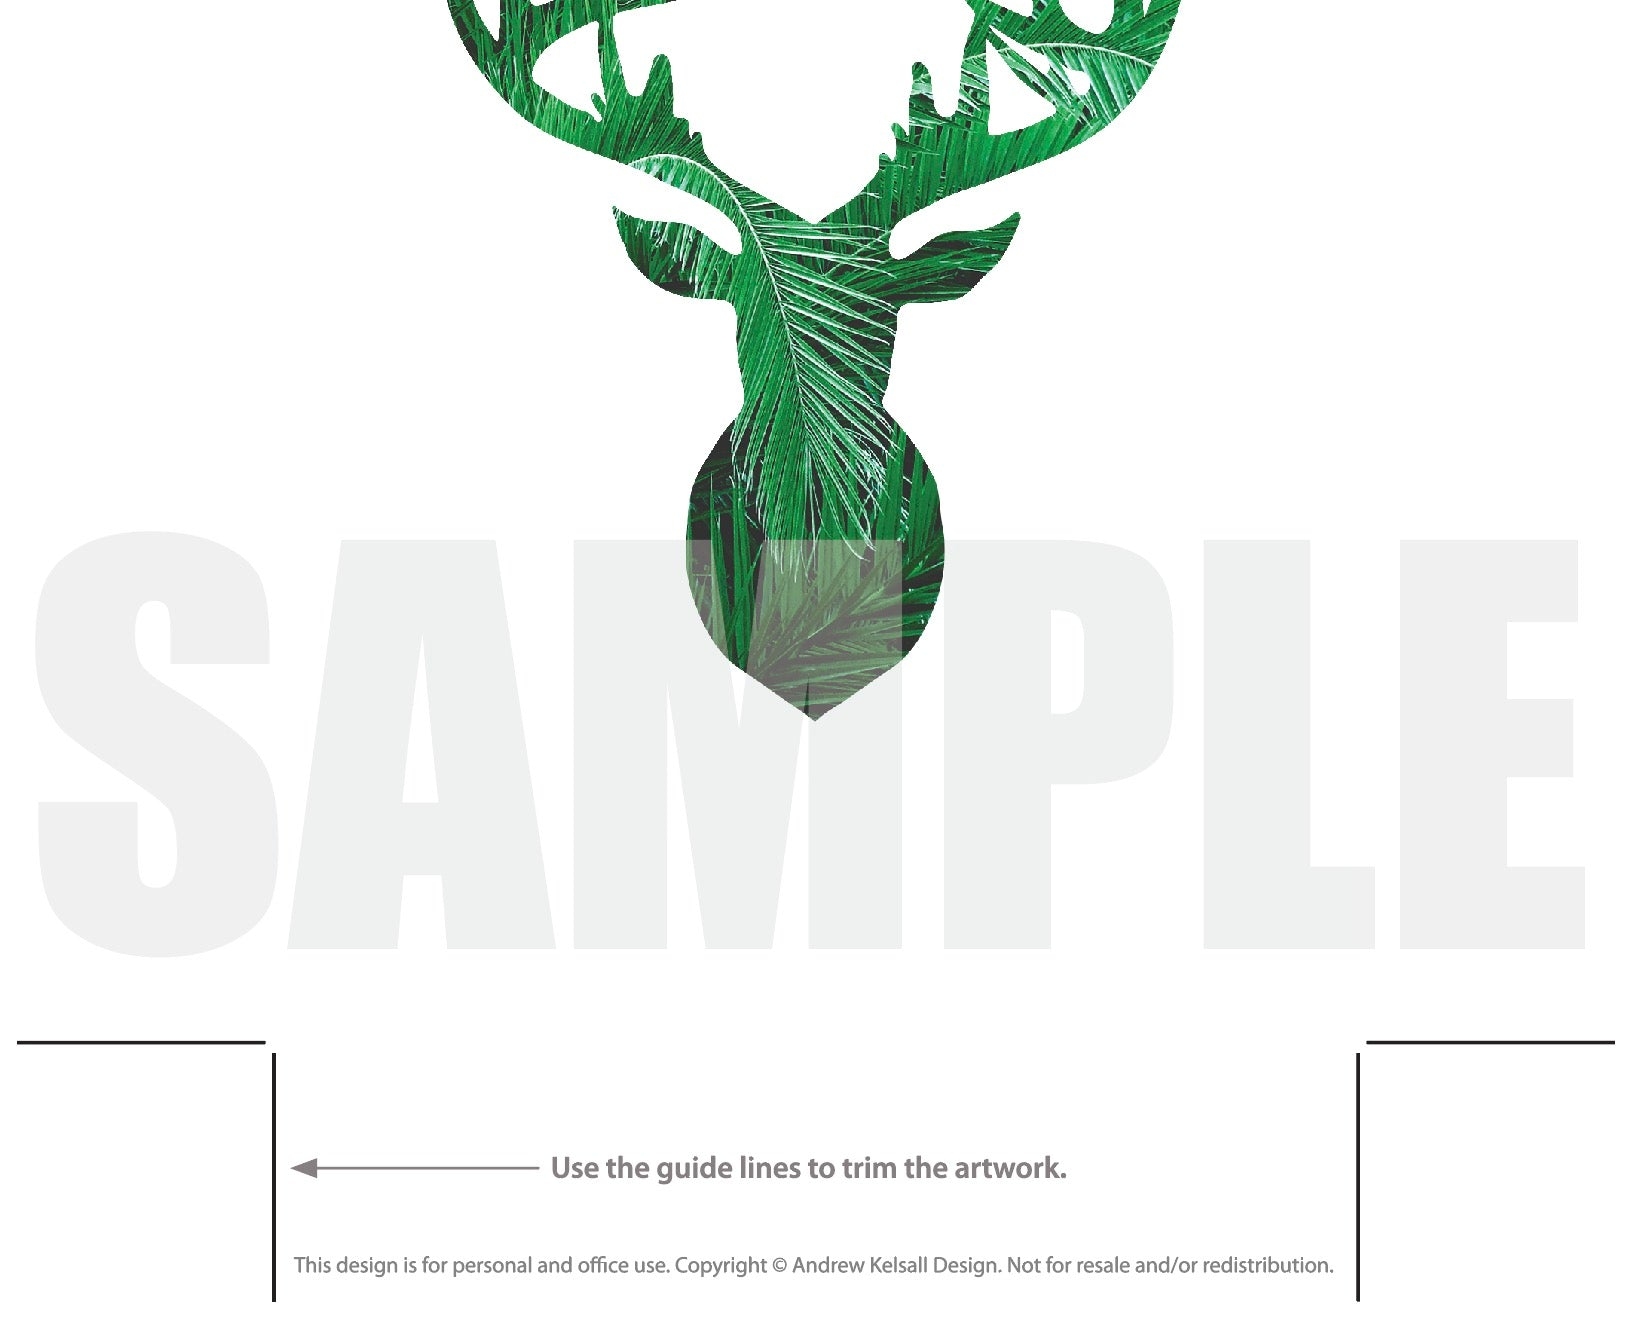 graphic about Deer Silhouette Printable named Deer Intellect Silhouette Palm Leaves Printable - Deer Determine